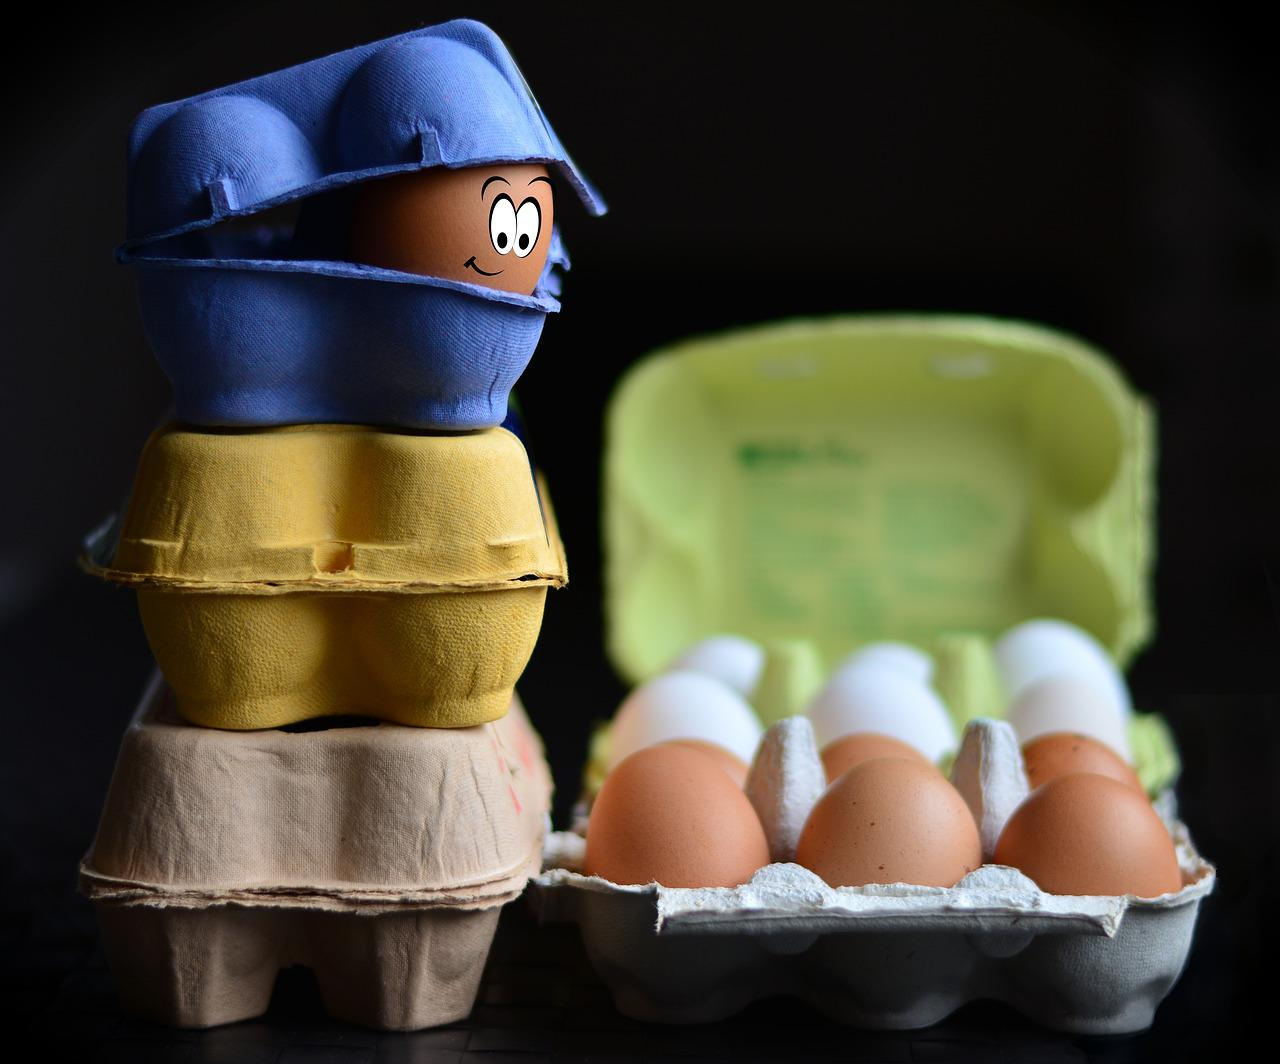 What's the healthiest part of an egg?